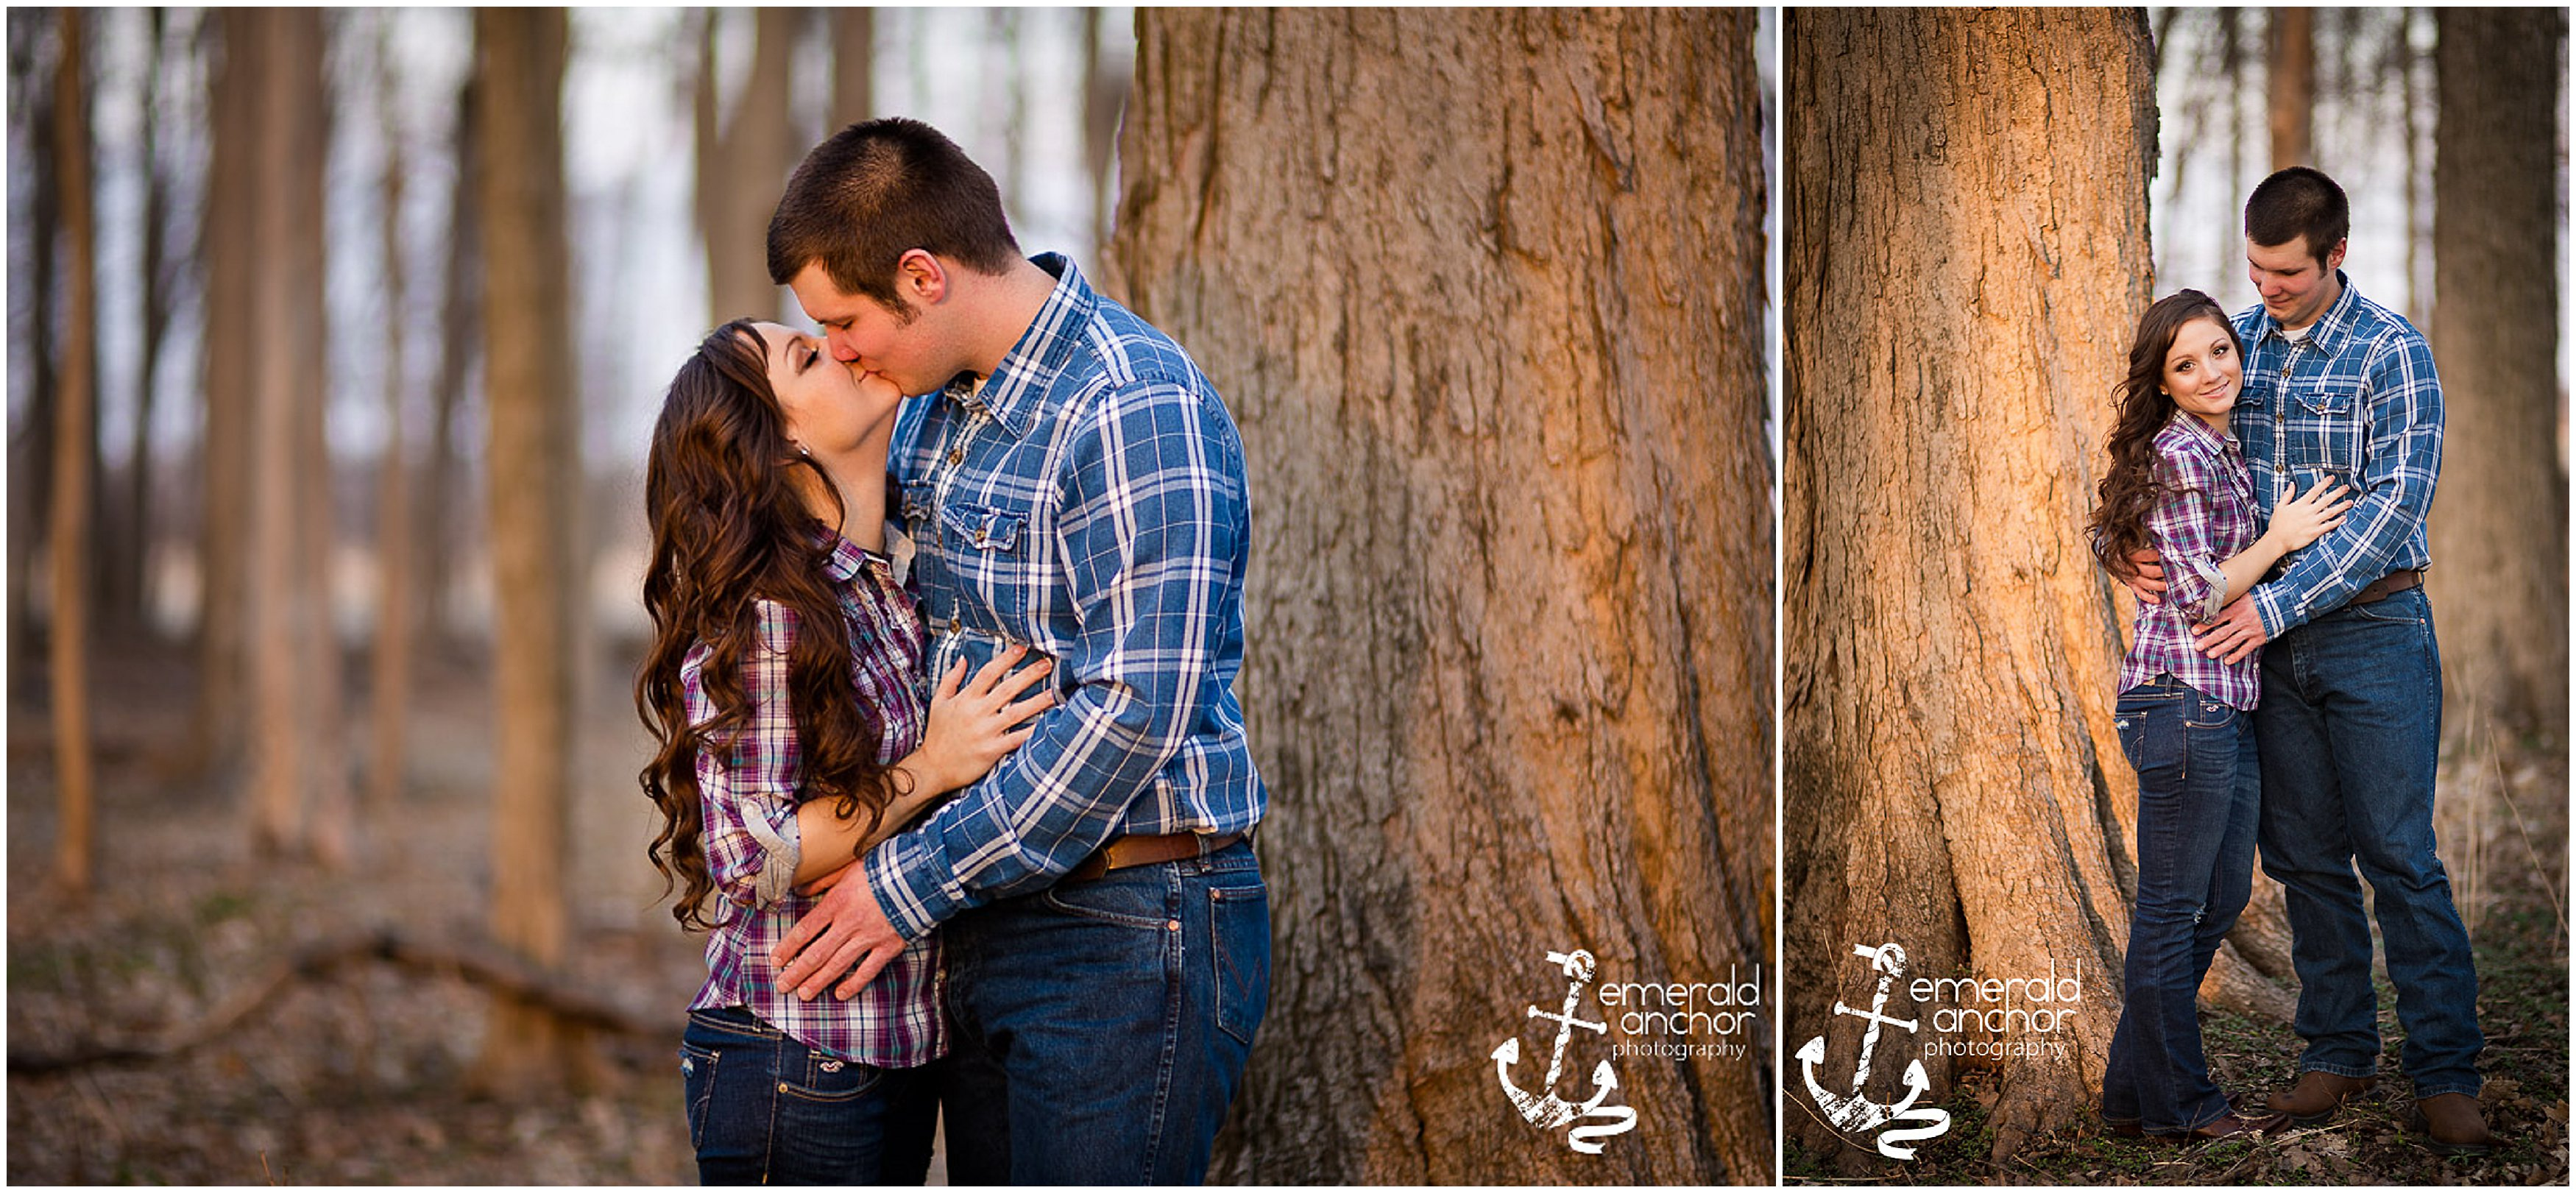 Emerald Anchor Photography Engagement Pictures (9)